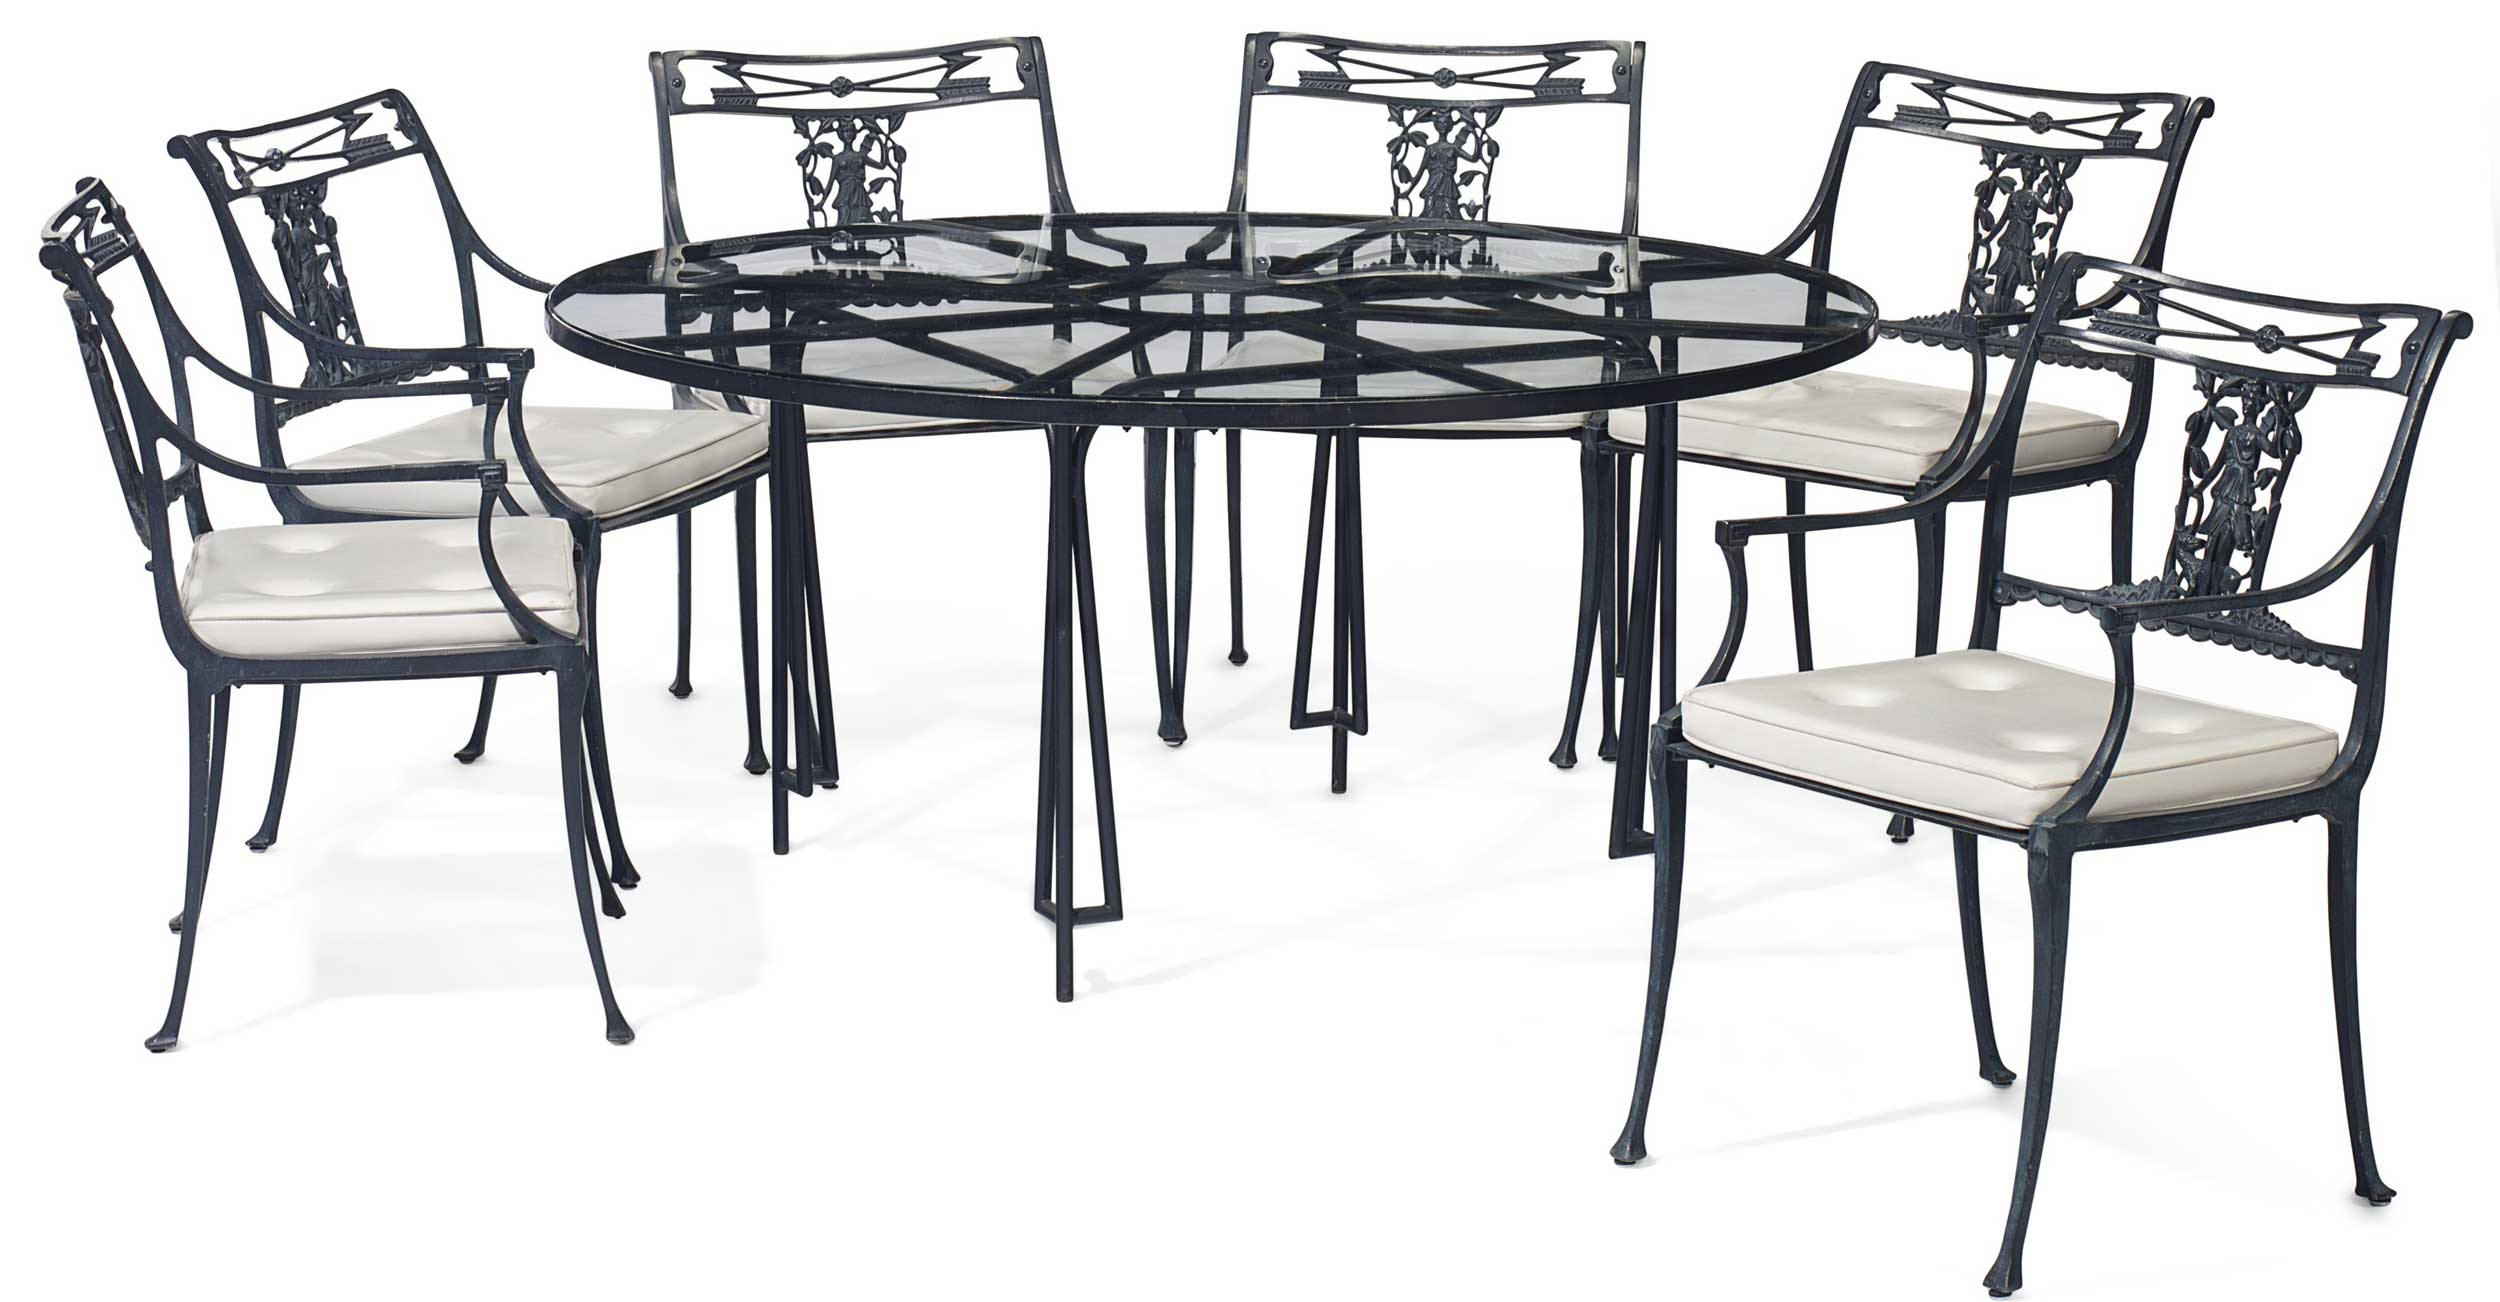 <b>A Suite of Bronze Patinated Metal Furniture</b><br/>by William Haines, Circa 1960<br/>Comprising a circular table and six armchairs